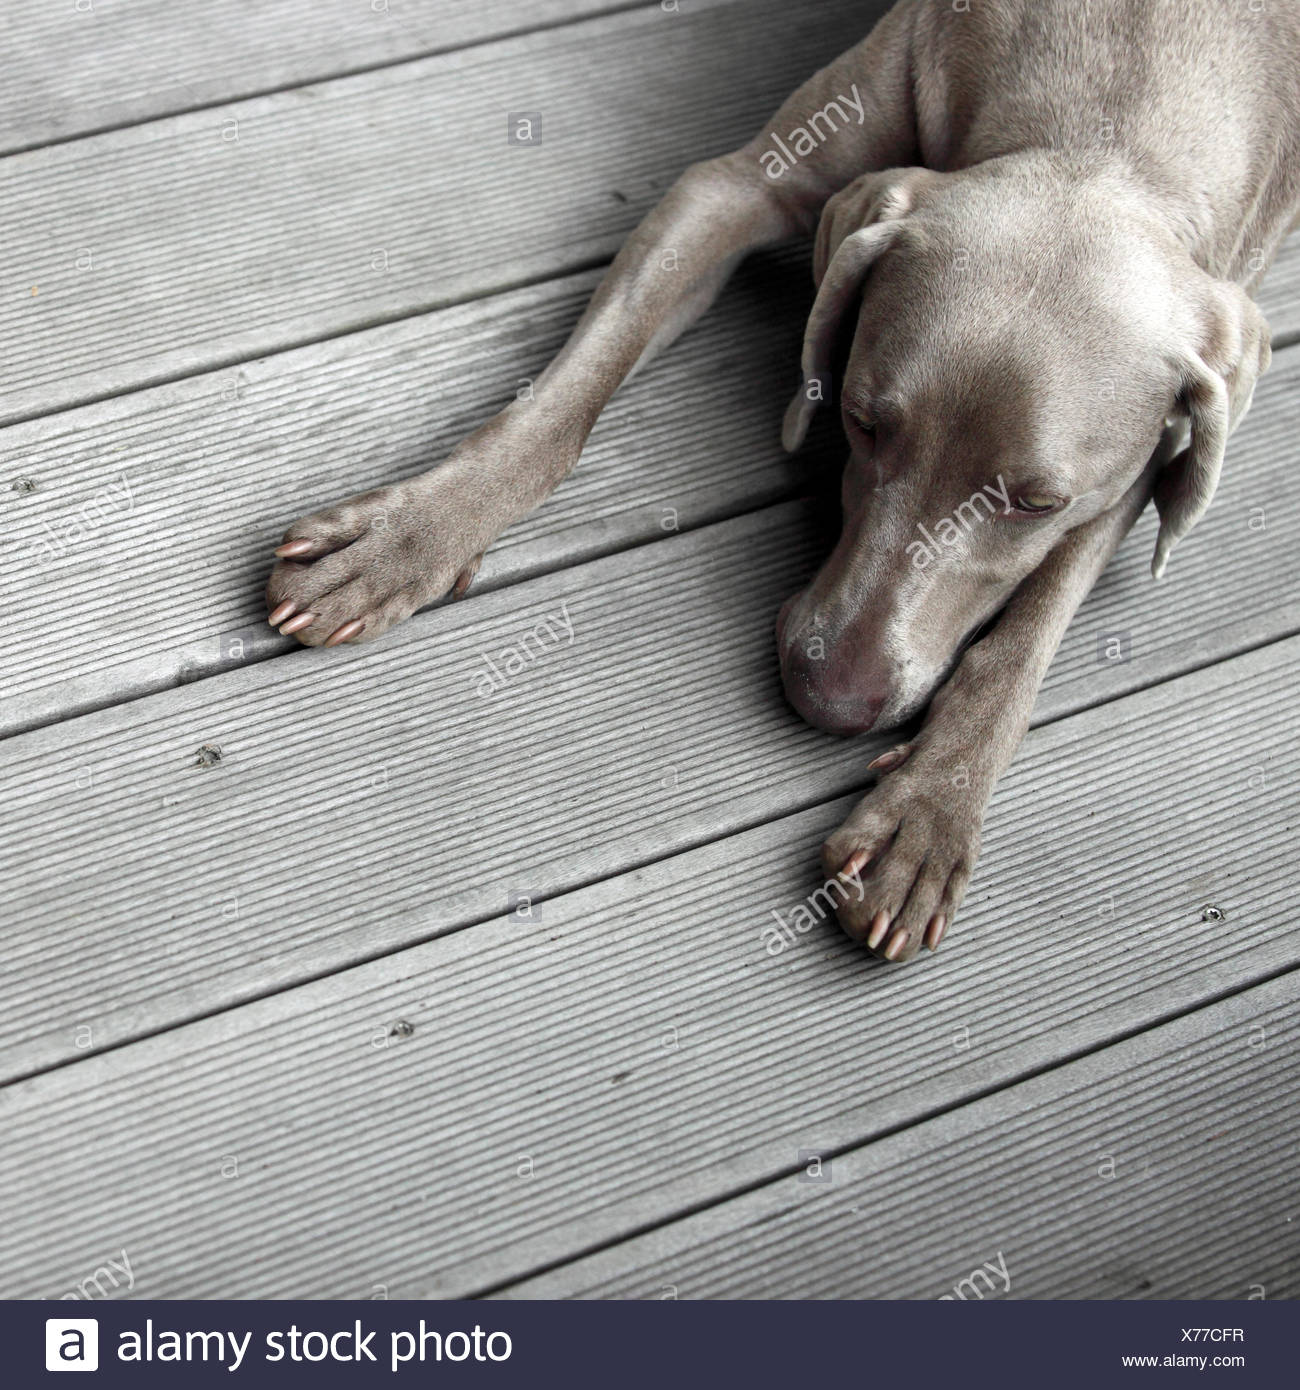 Dog rests on wooden floor - Stock Image